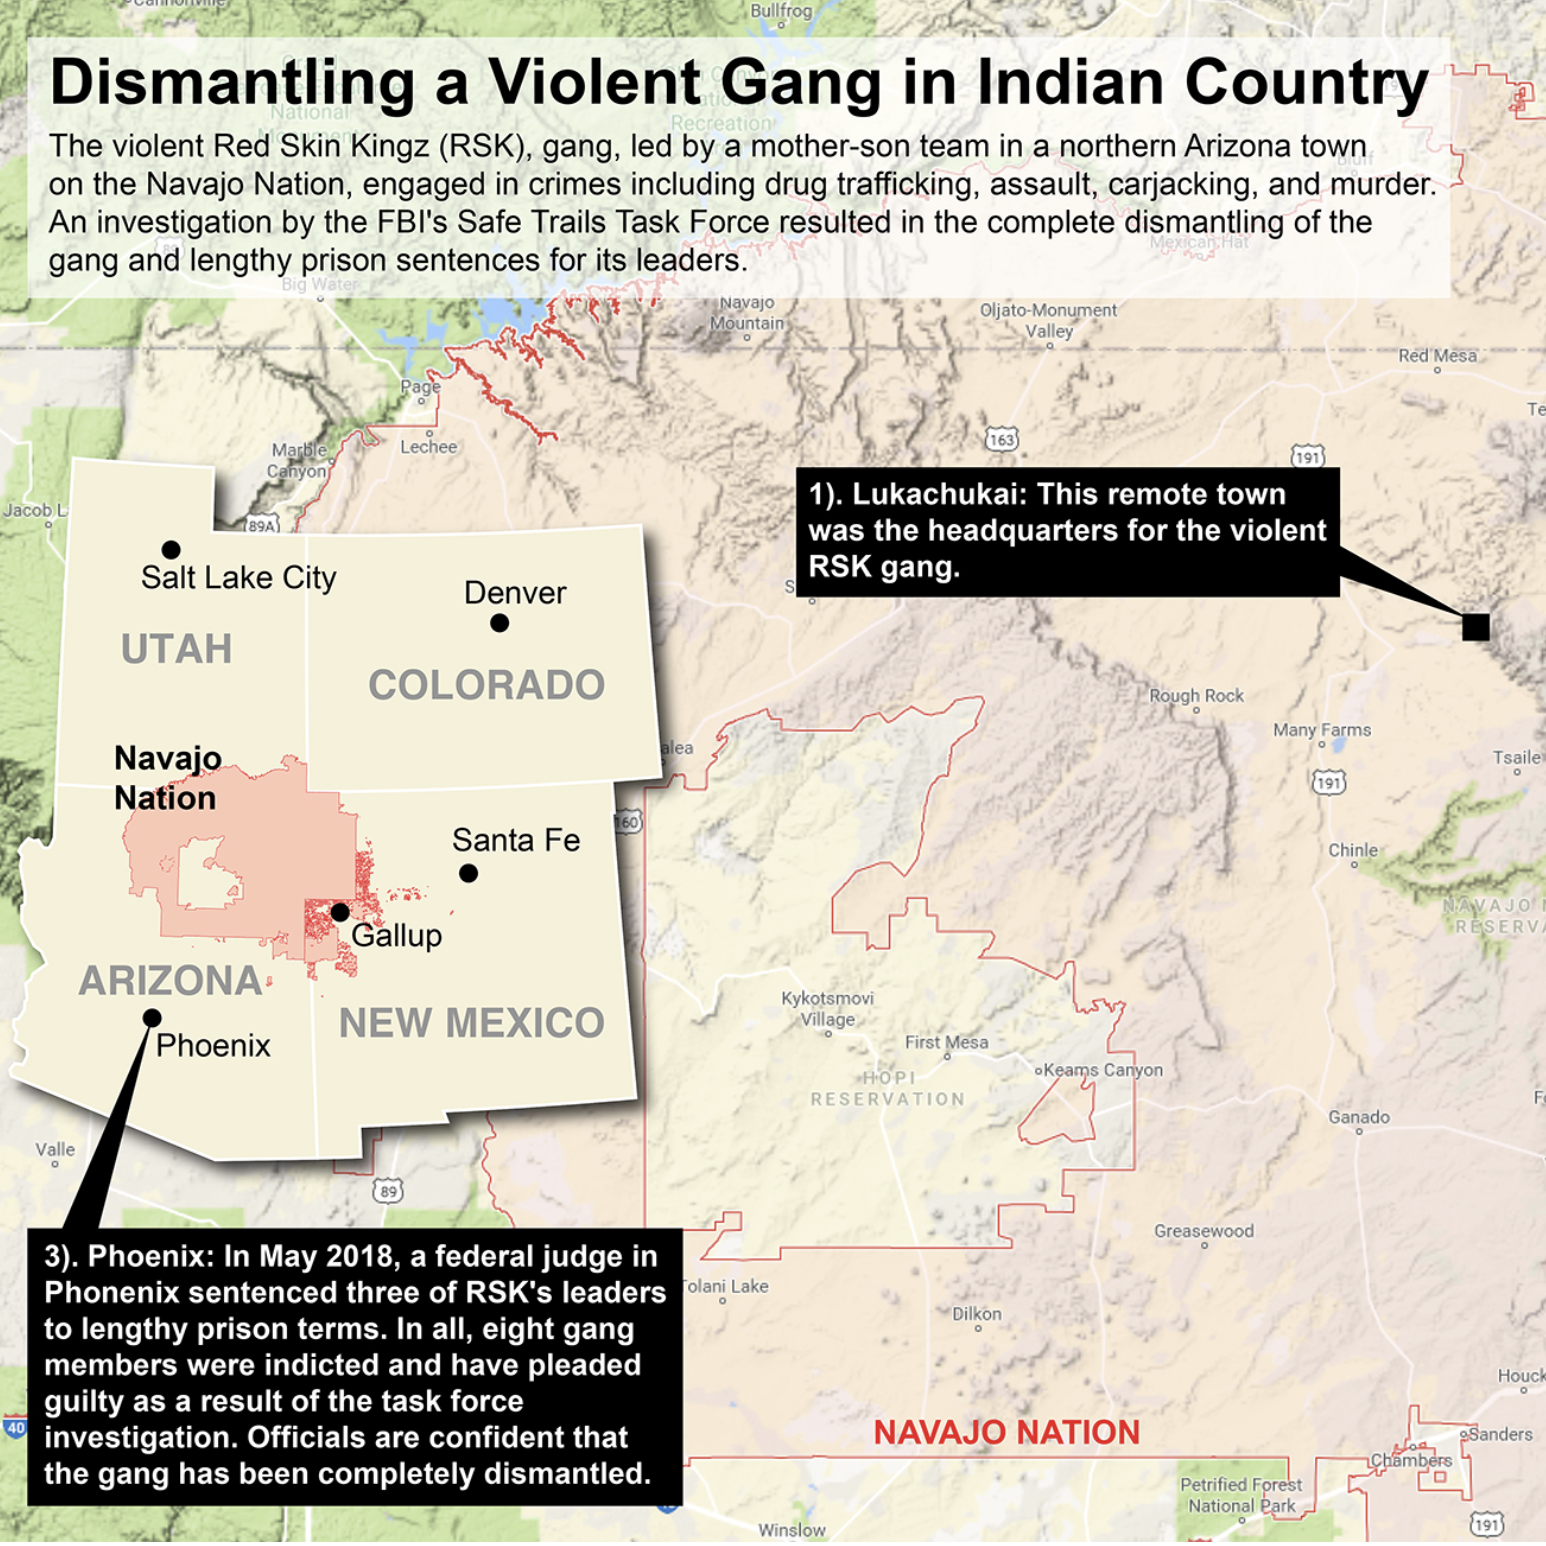 FBI: Murder led to dismantling of violent gang on Navajo Nation